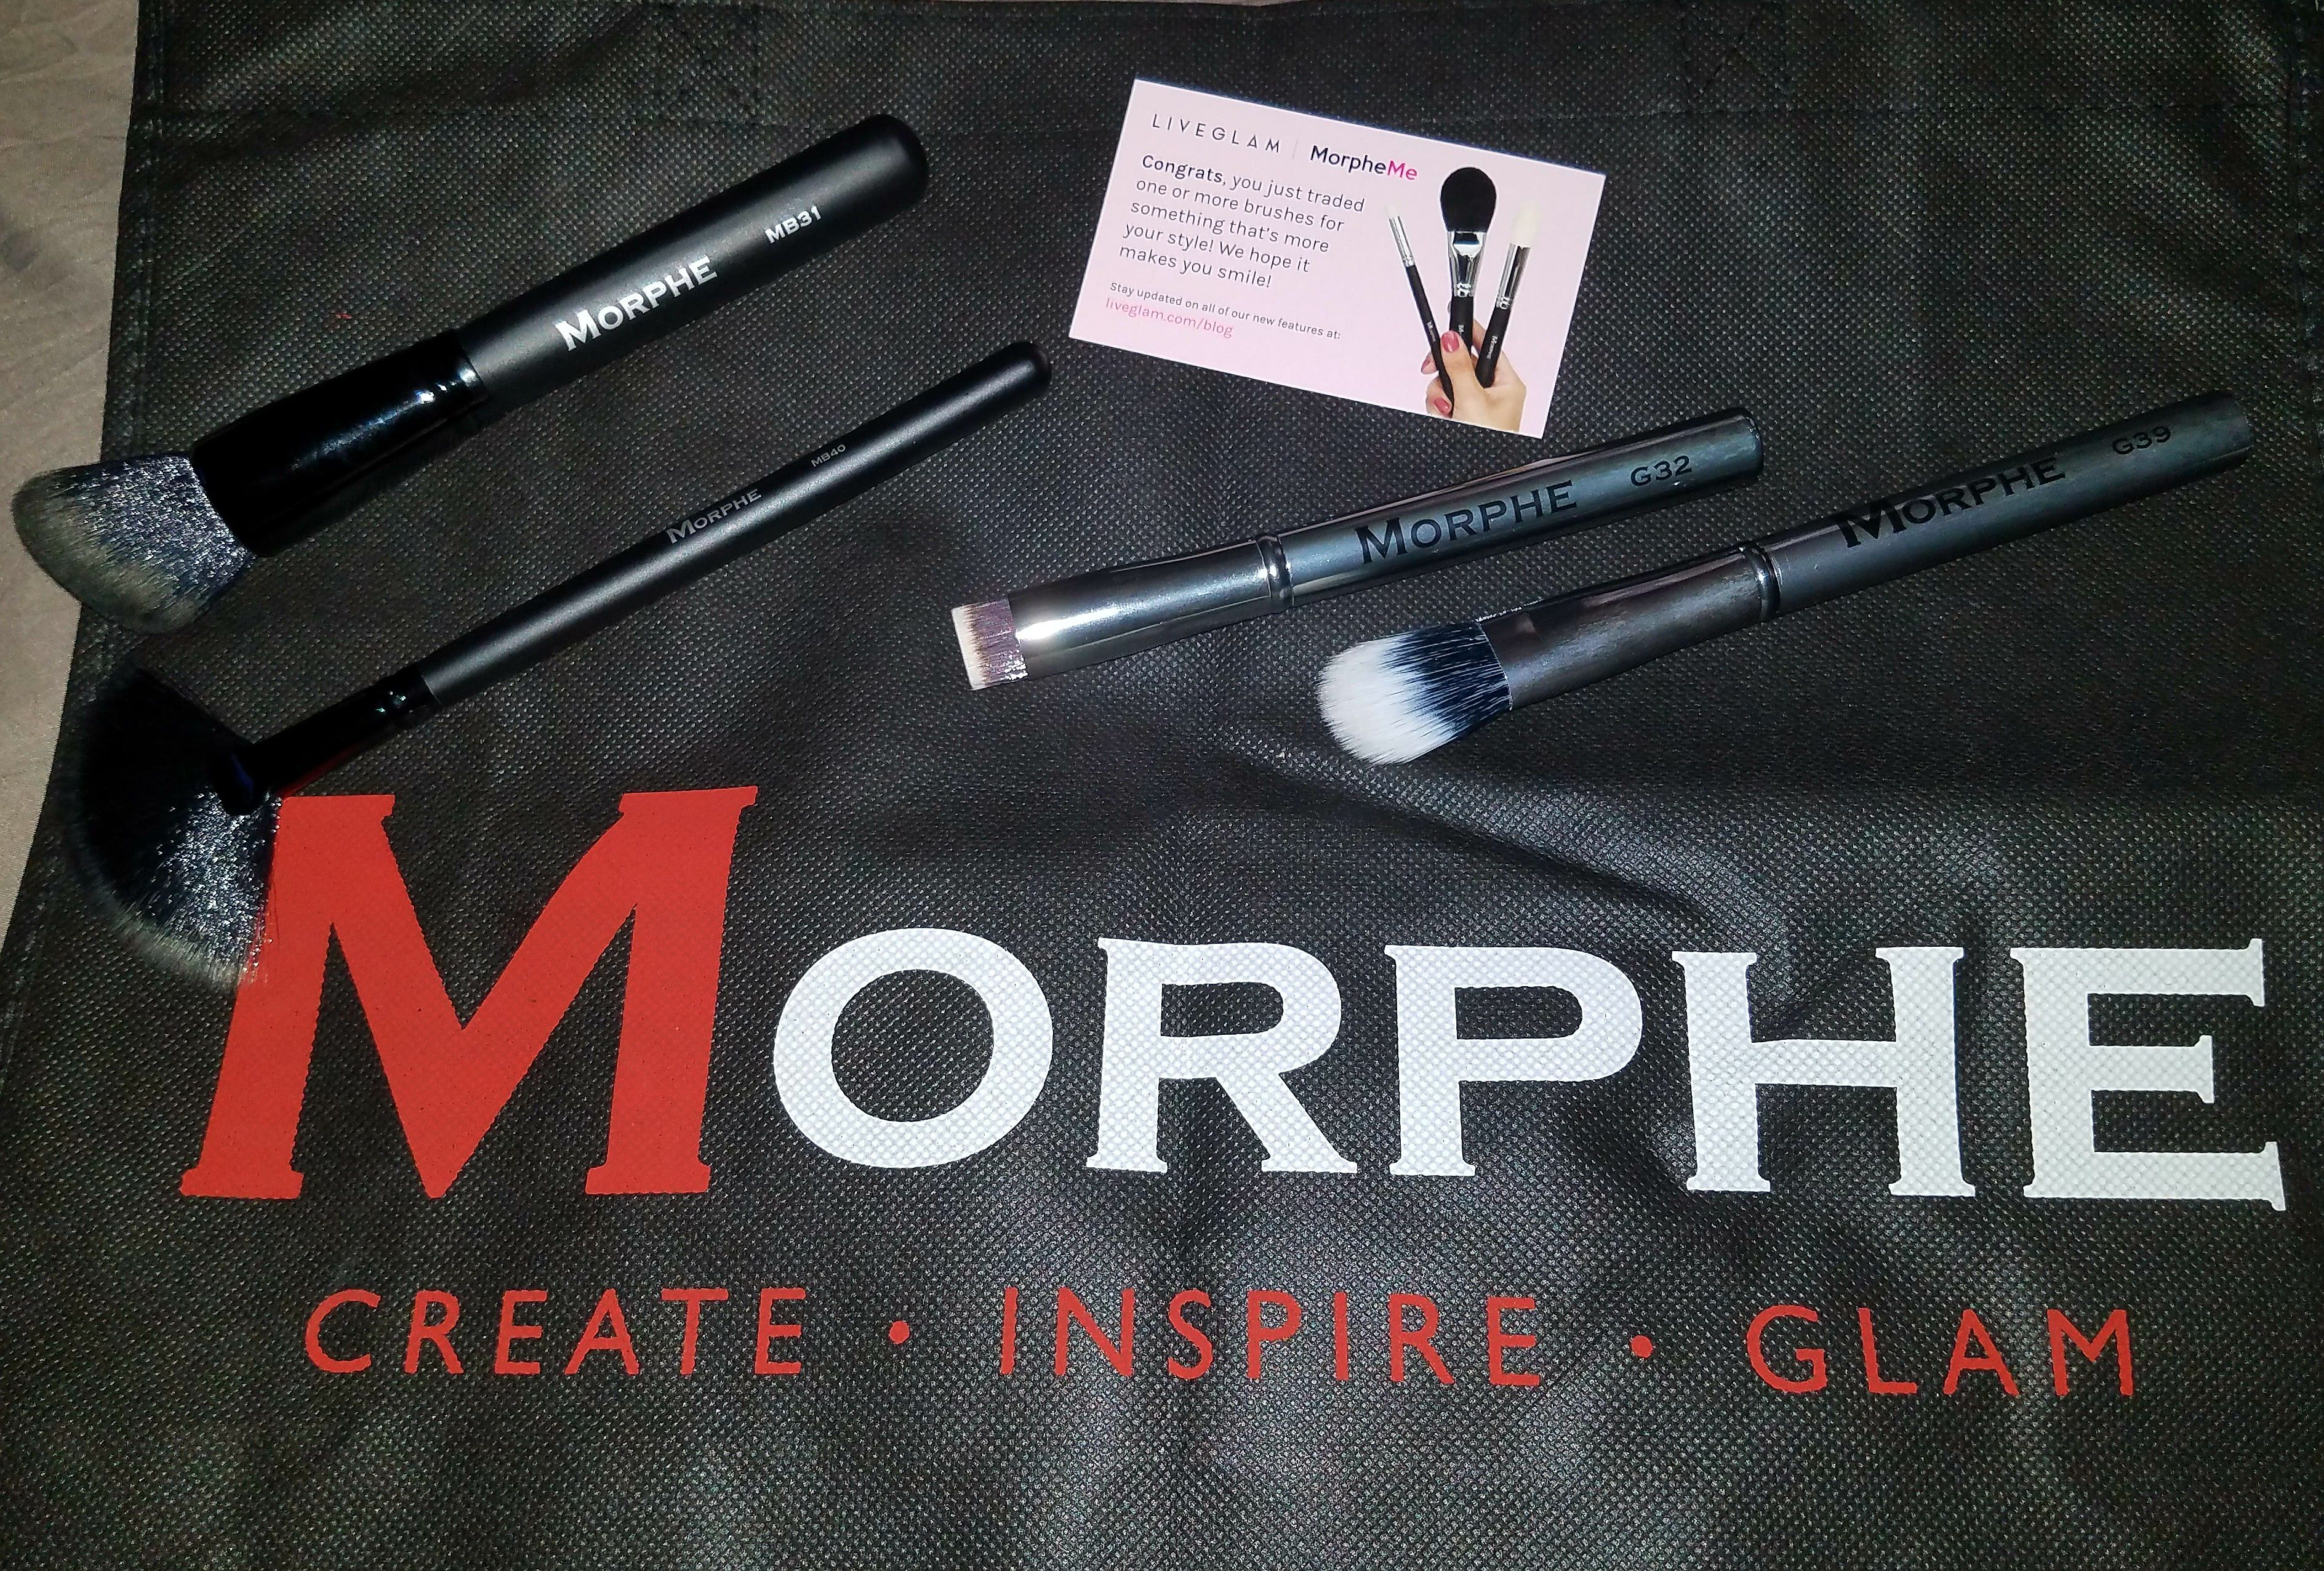 So once again I have opted to trade in my brushes, the January's Morphe brushes where nice but I have similar ones. The brushes I picked are the Flawless Collection. I also redeemed 200 point…